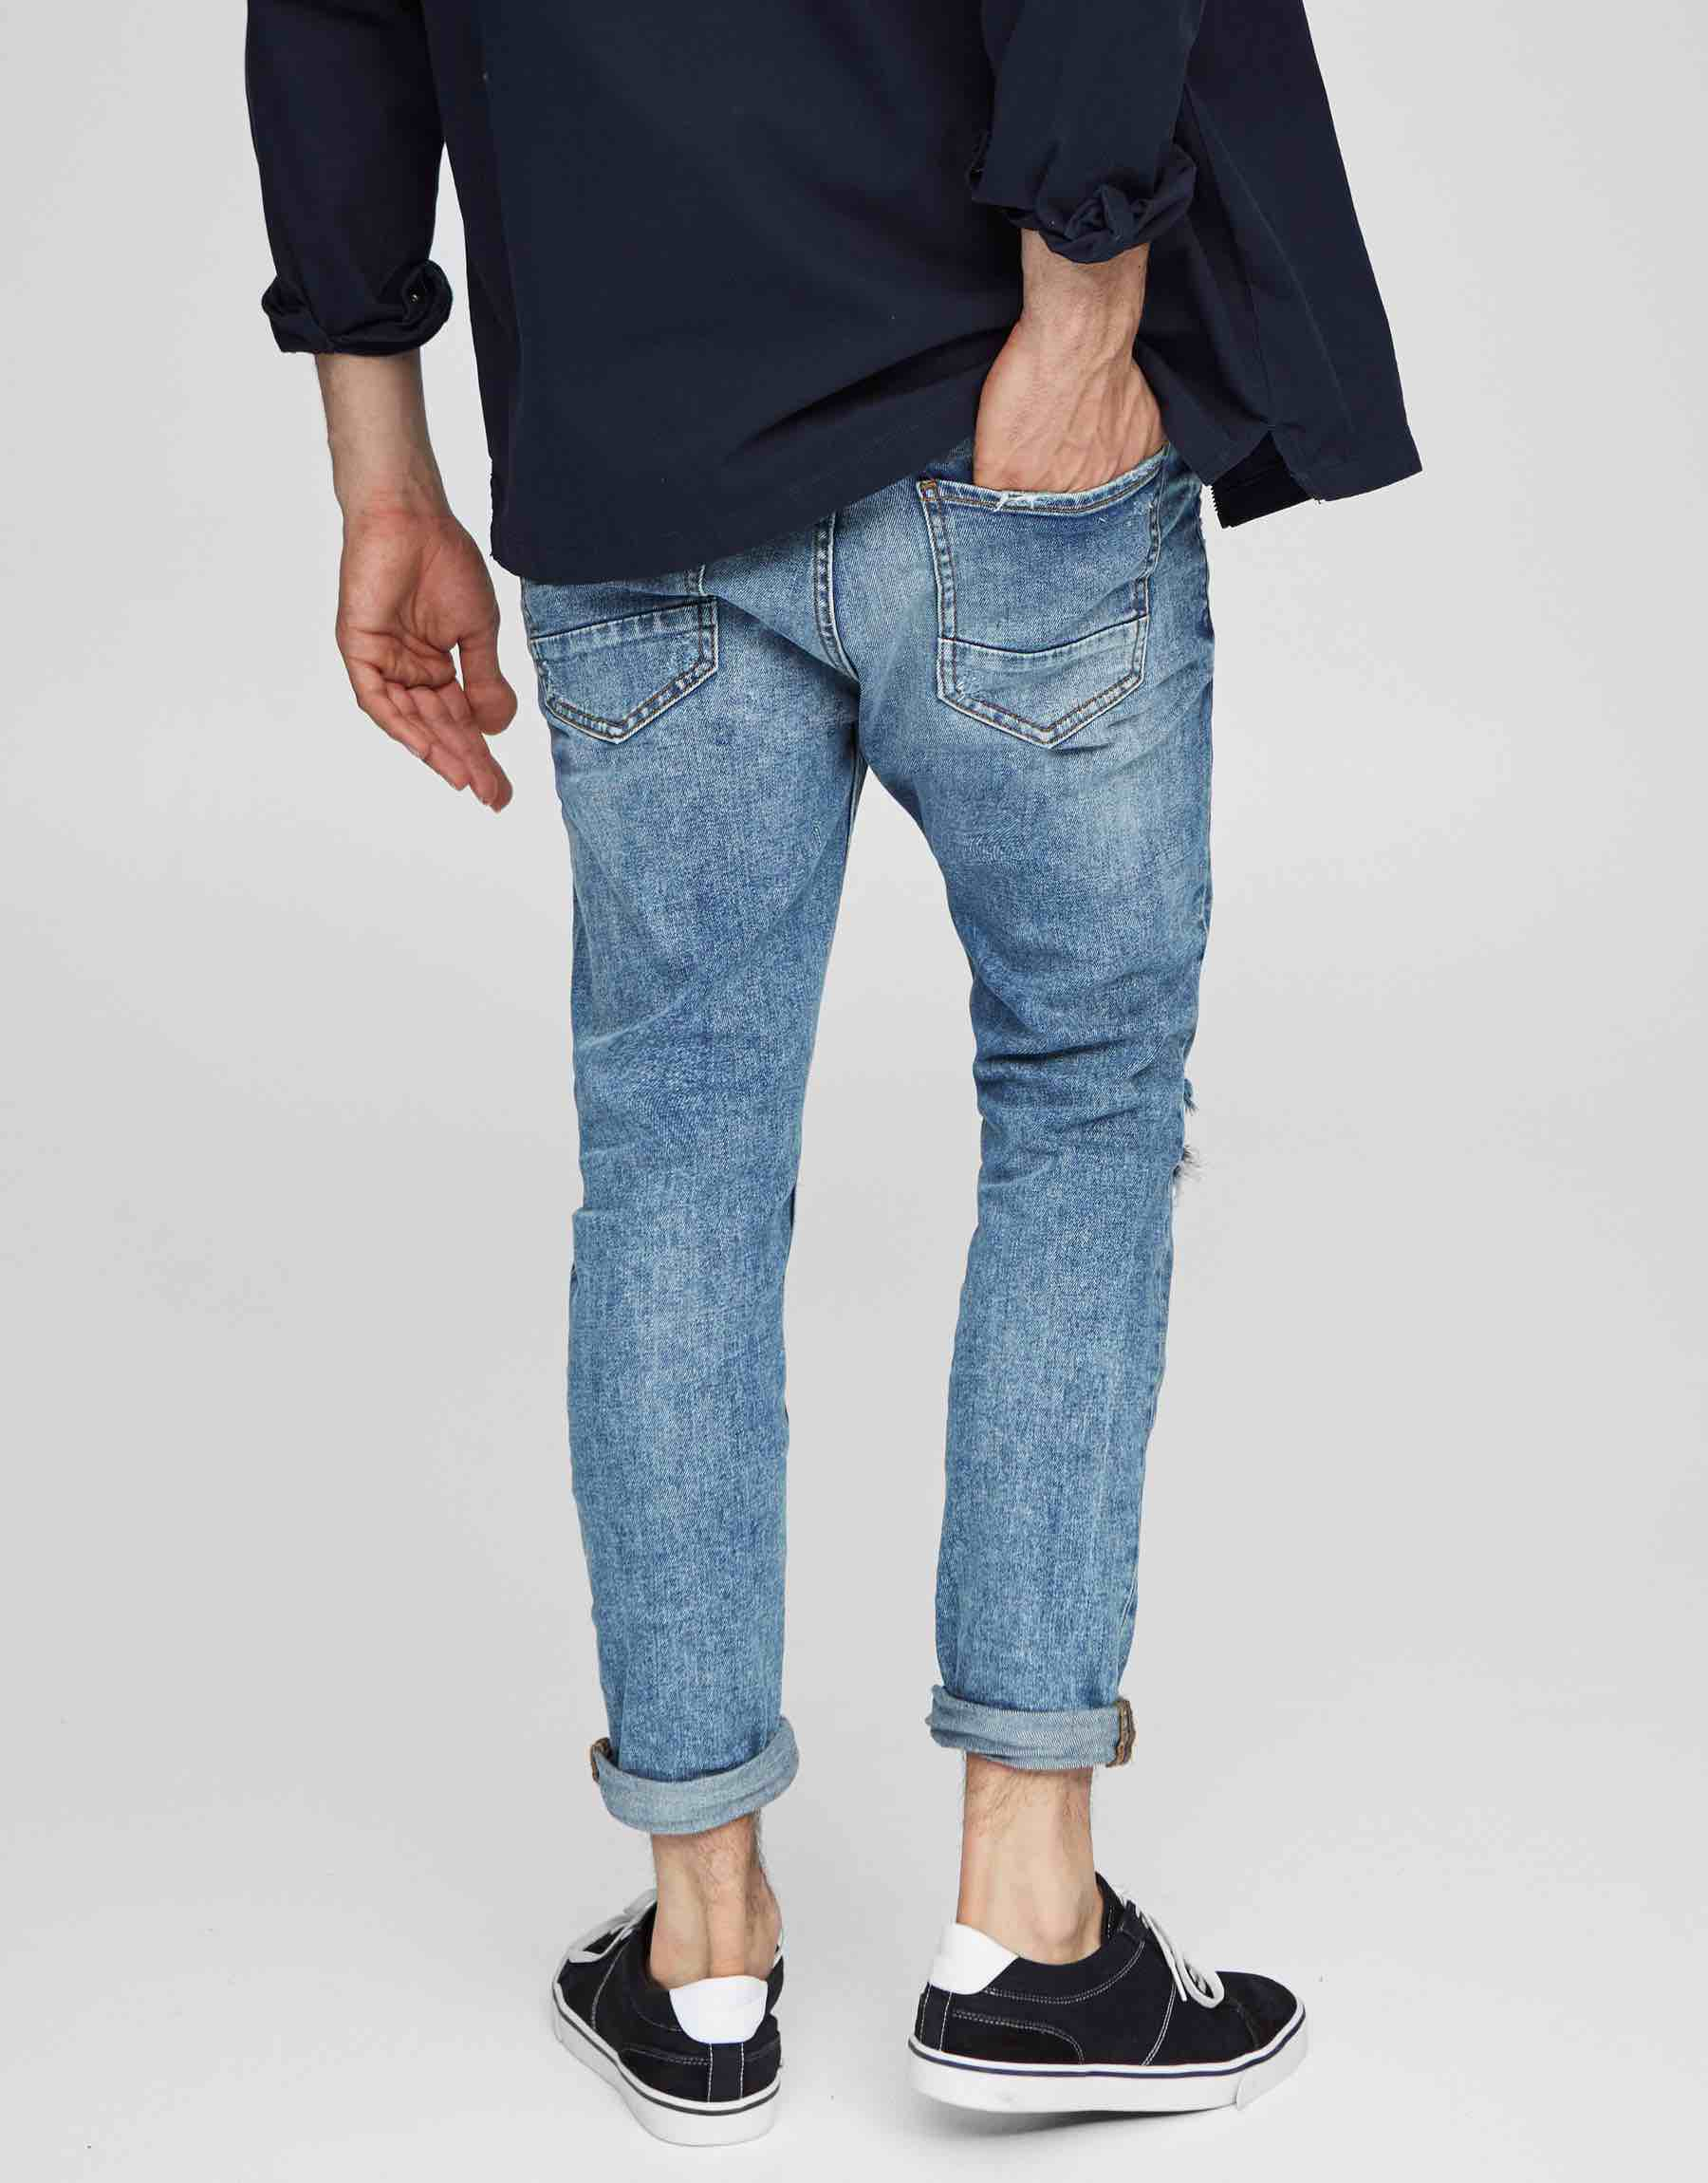 roll up jeans